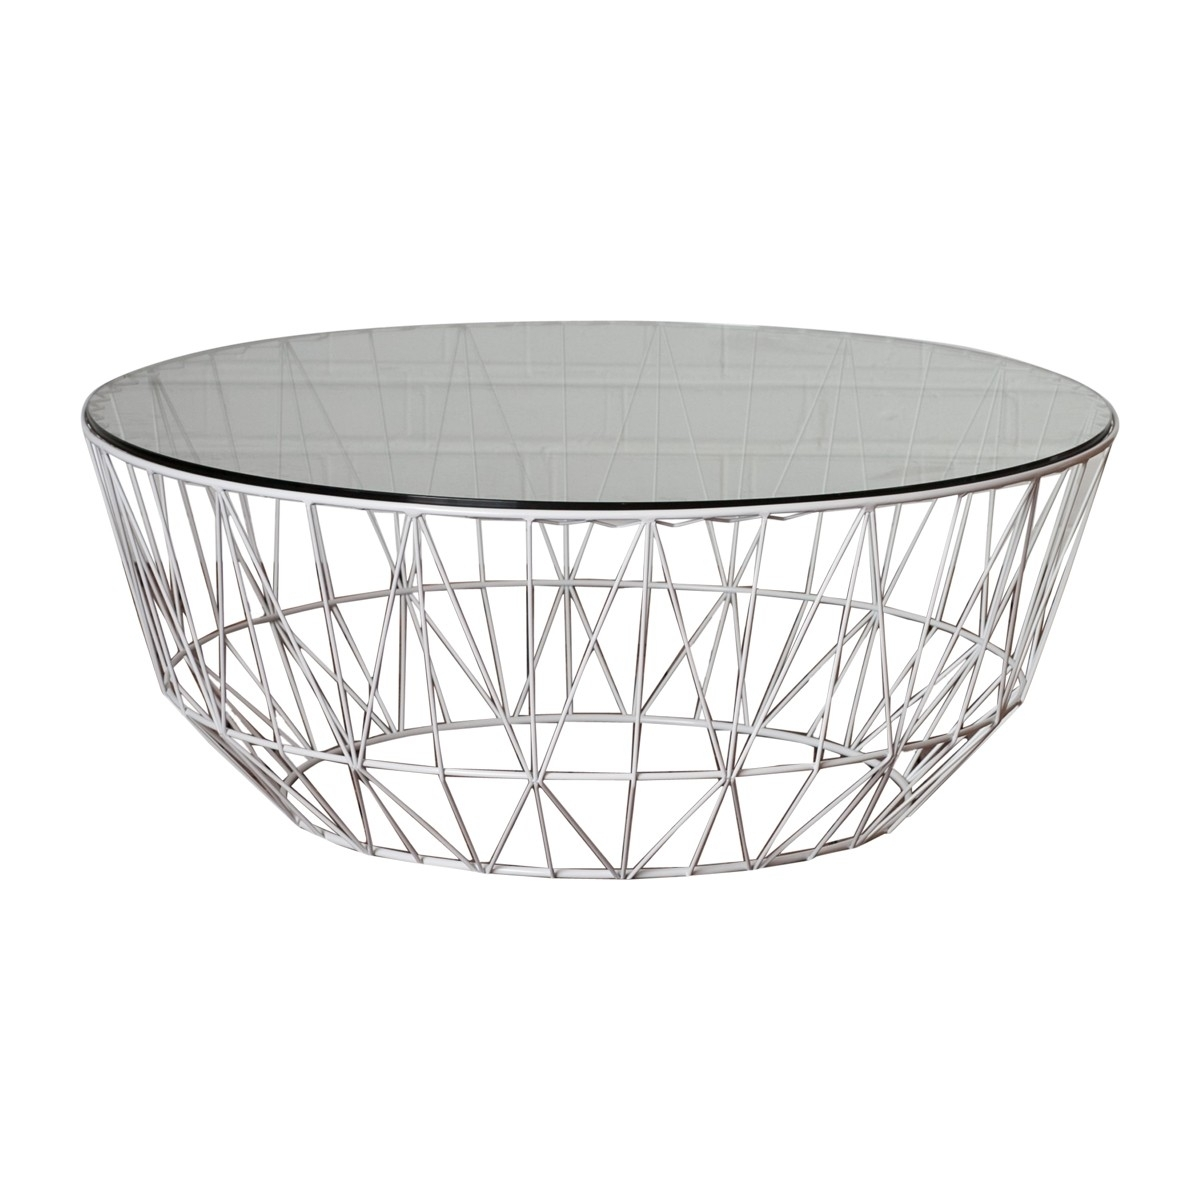 Life Interiors - Studio Wire Glass Coffee Table (White) - Modern regarding Black Wire Coffee Tables (Image 14 of 30)